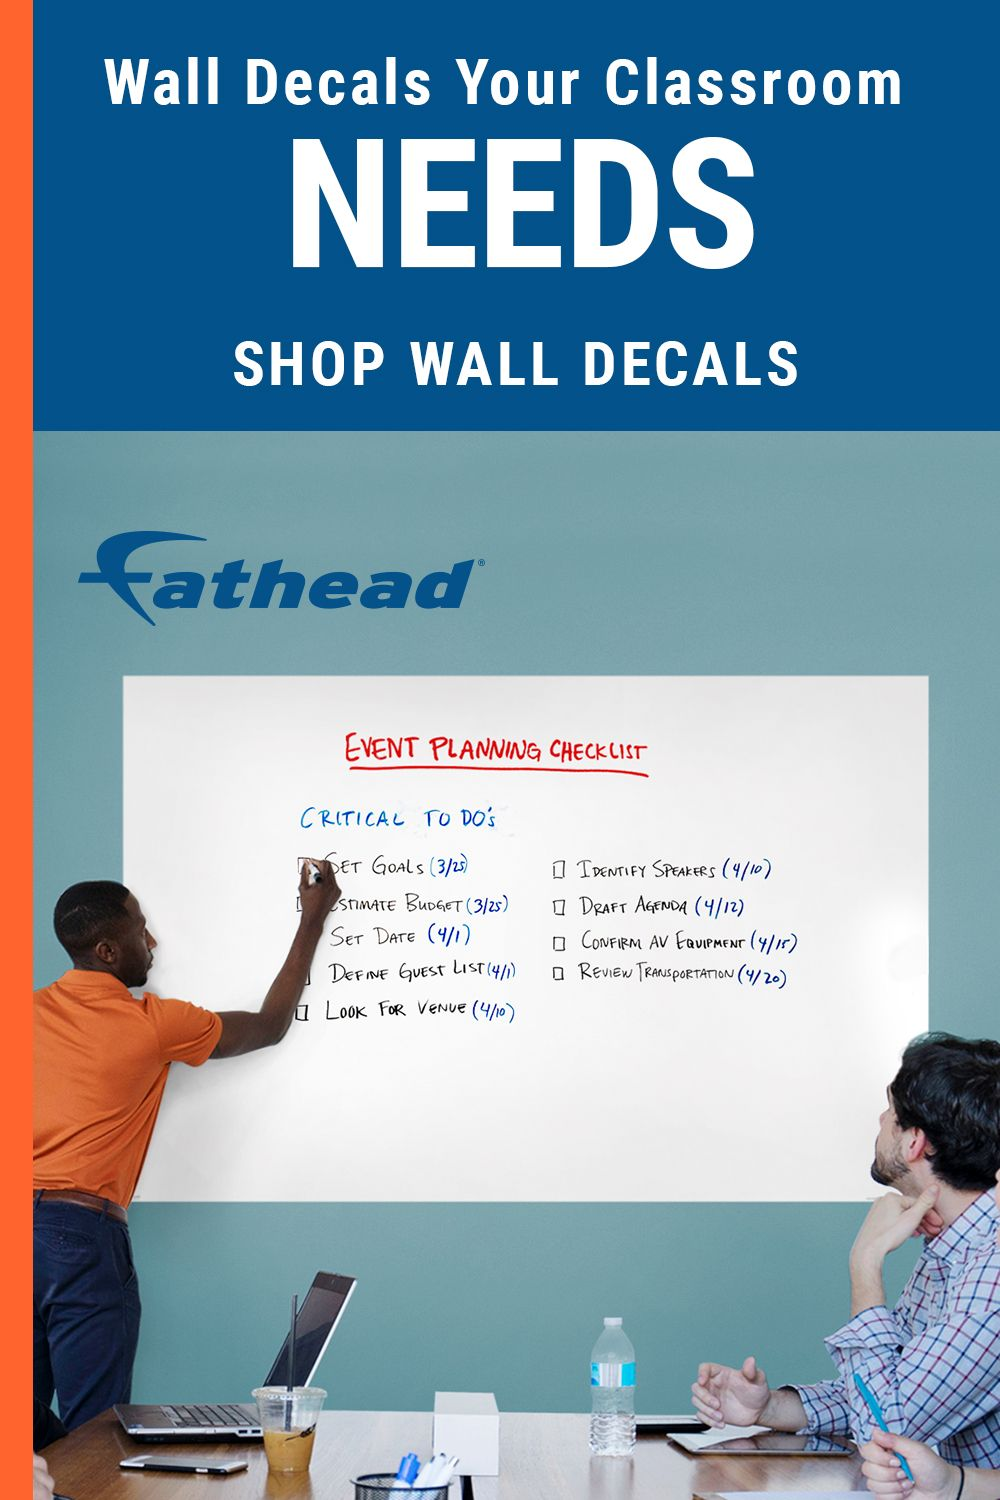 Peel and stick whiteboard wall decals are easy to order online now